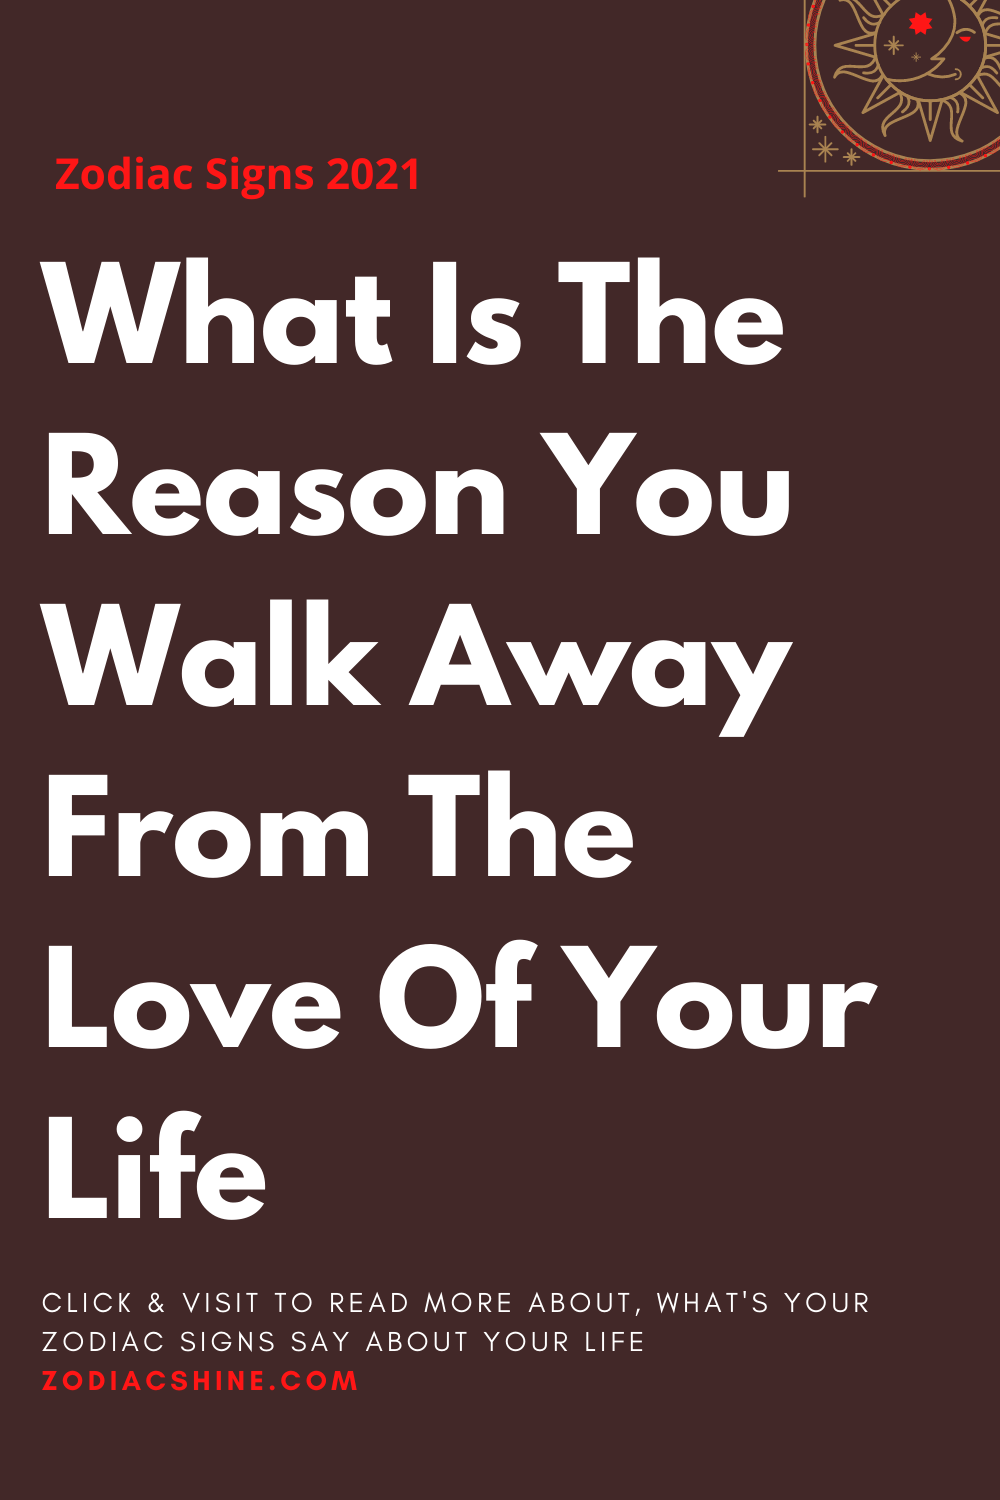 What Is The Reason You Walk Away From The Love Of Your Life